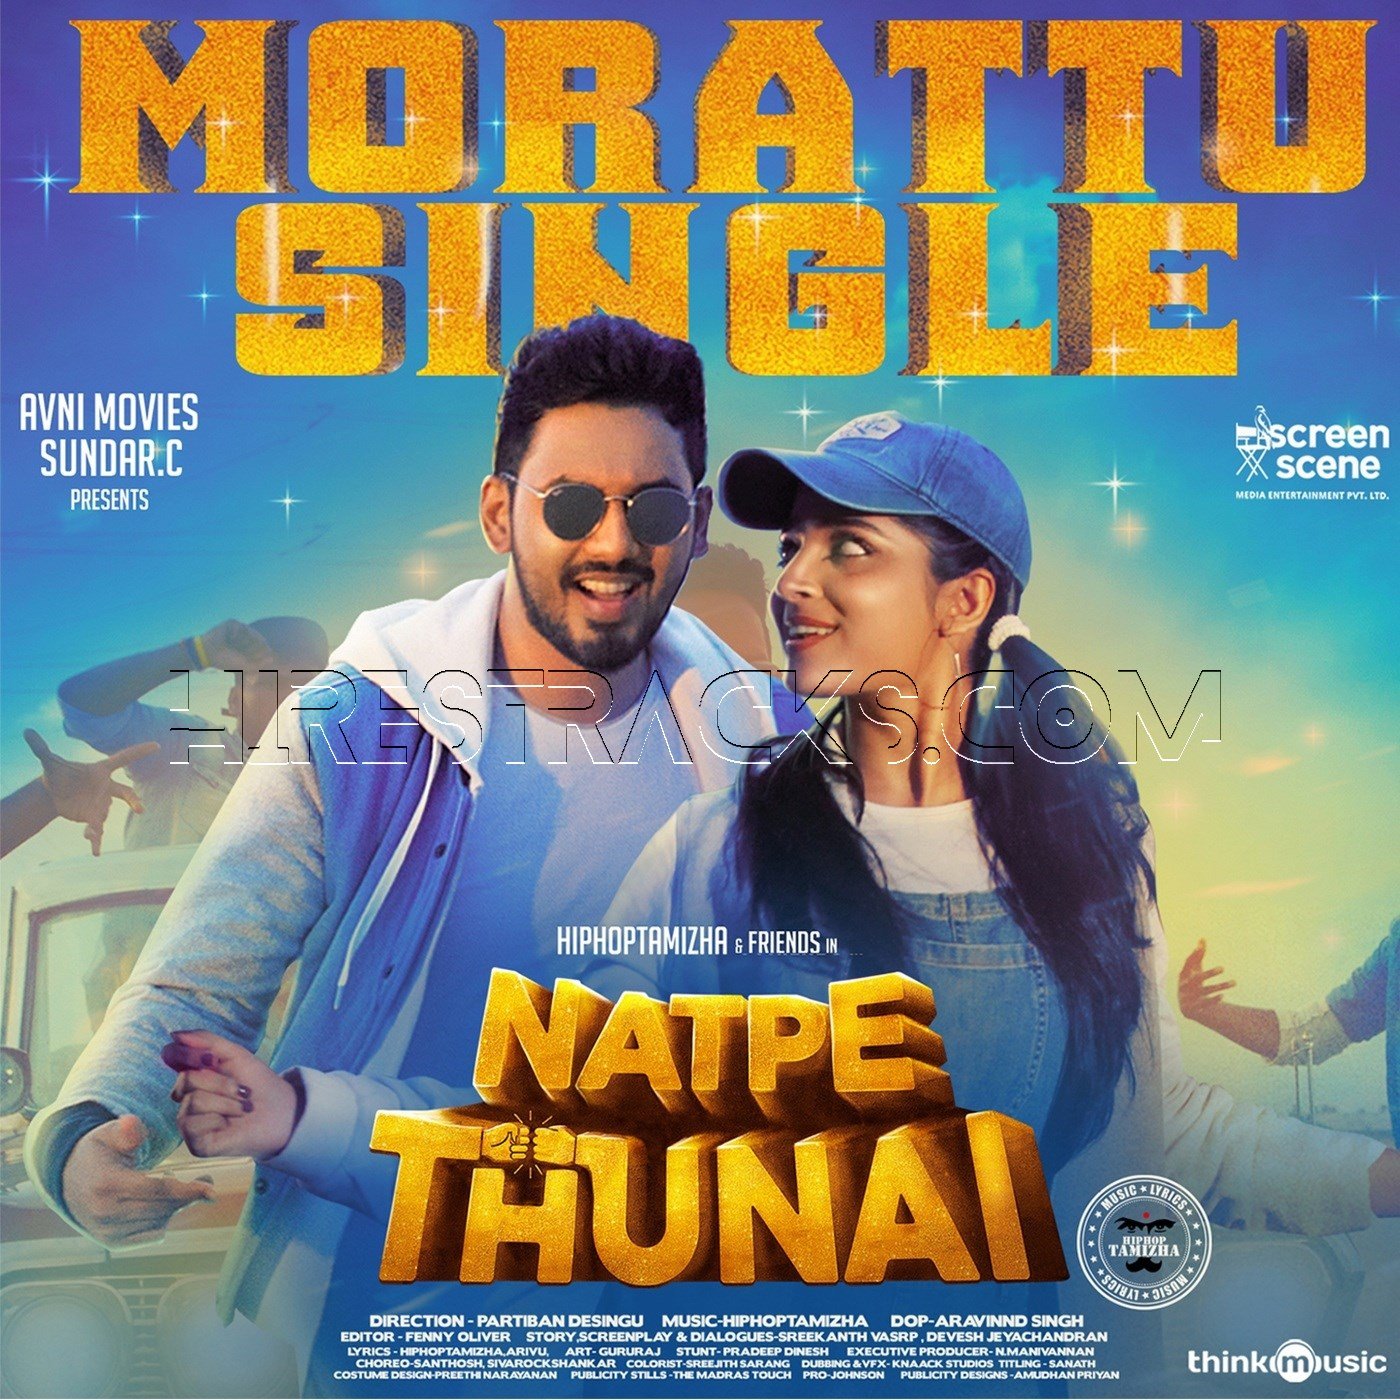 Morattu Single (From Natpe Thunai) – Single (2019)